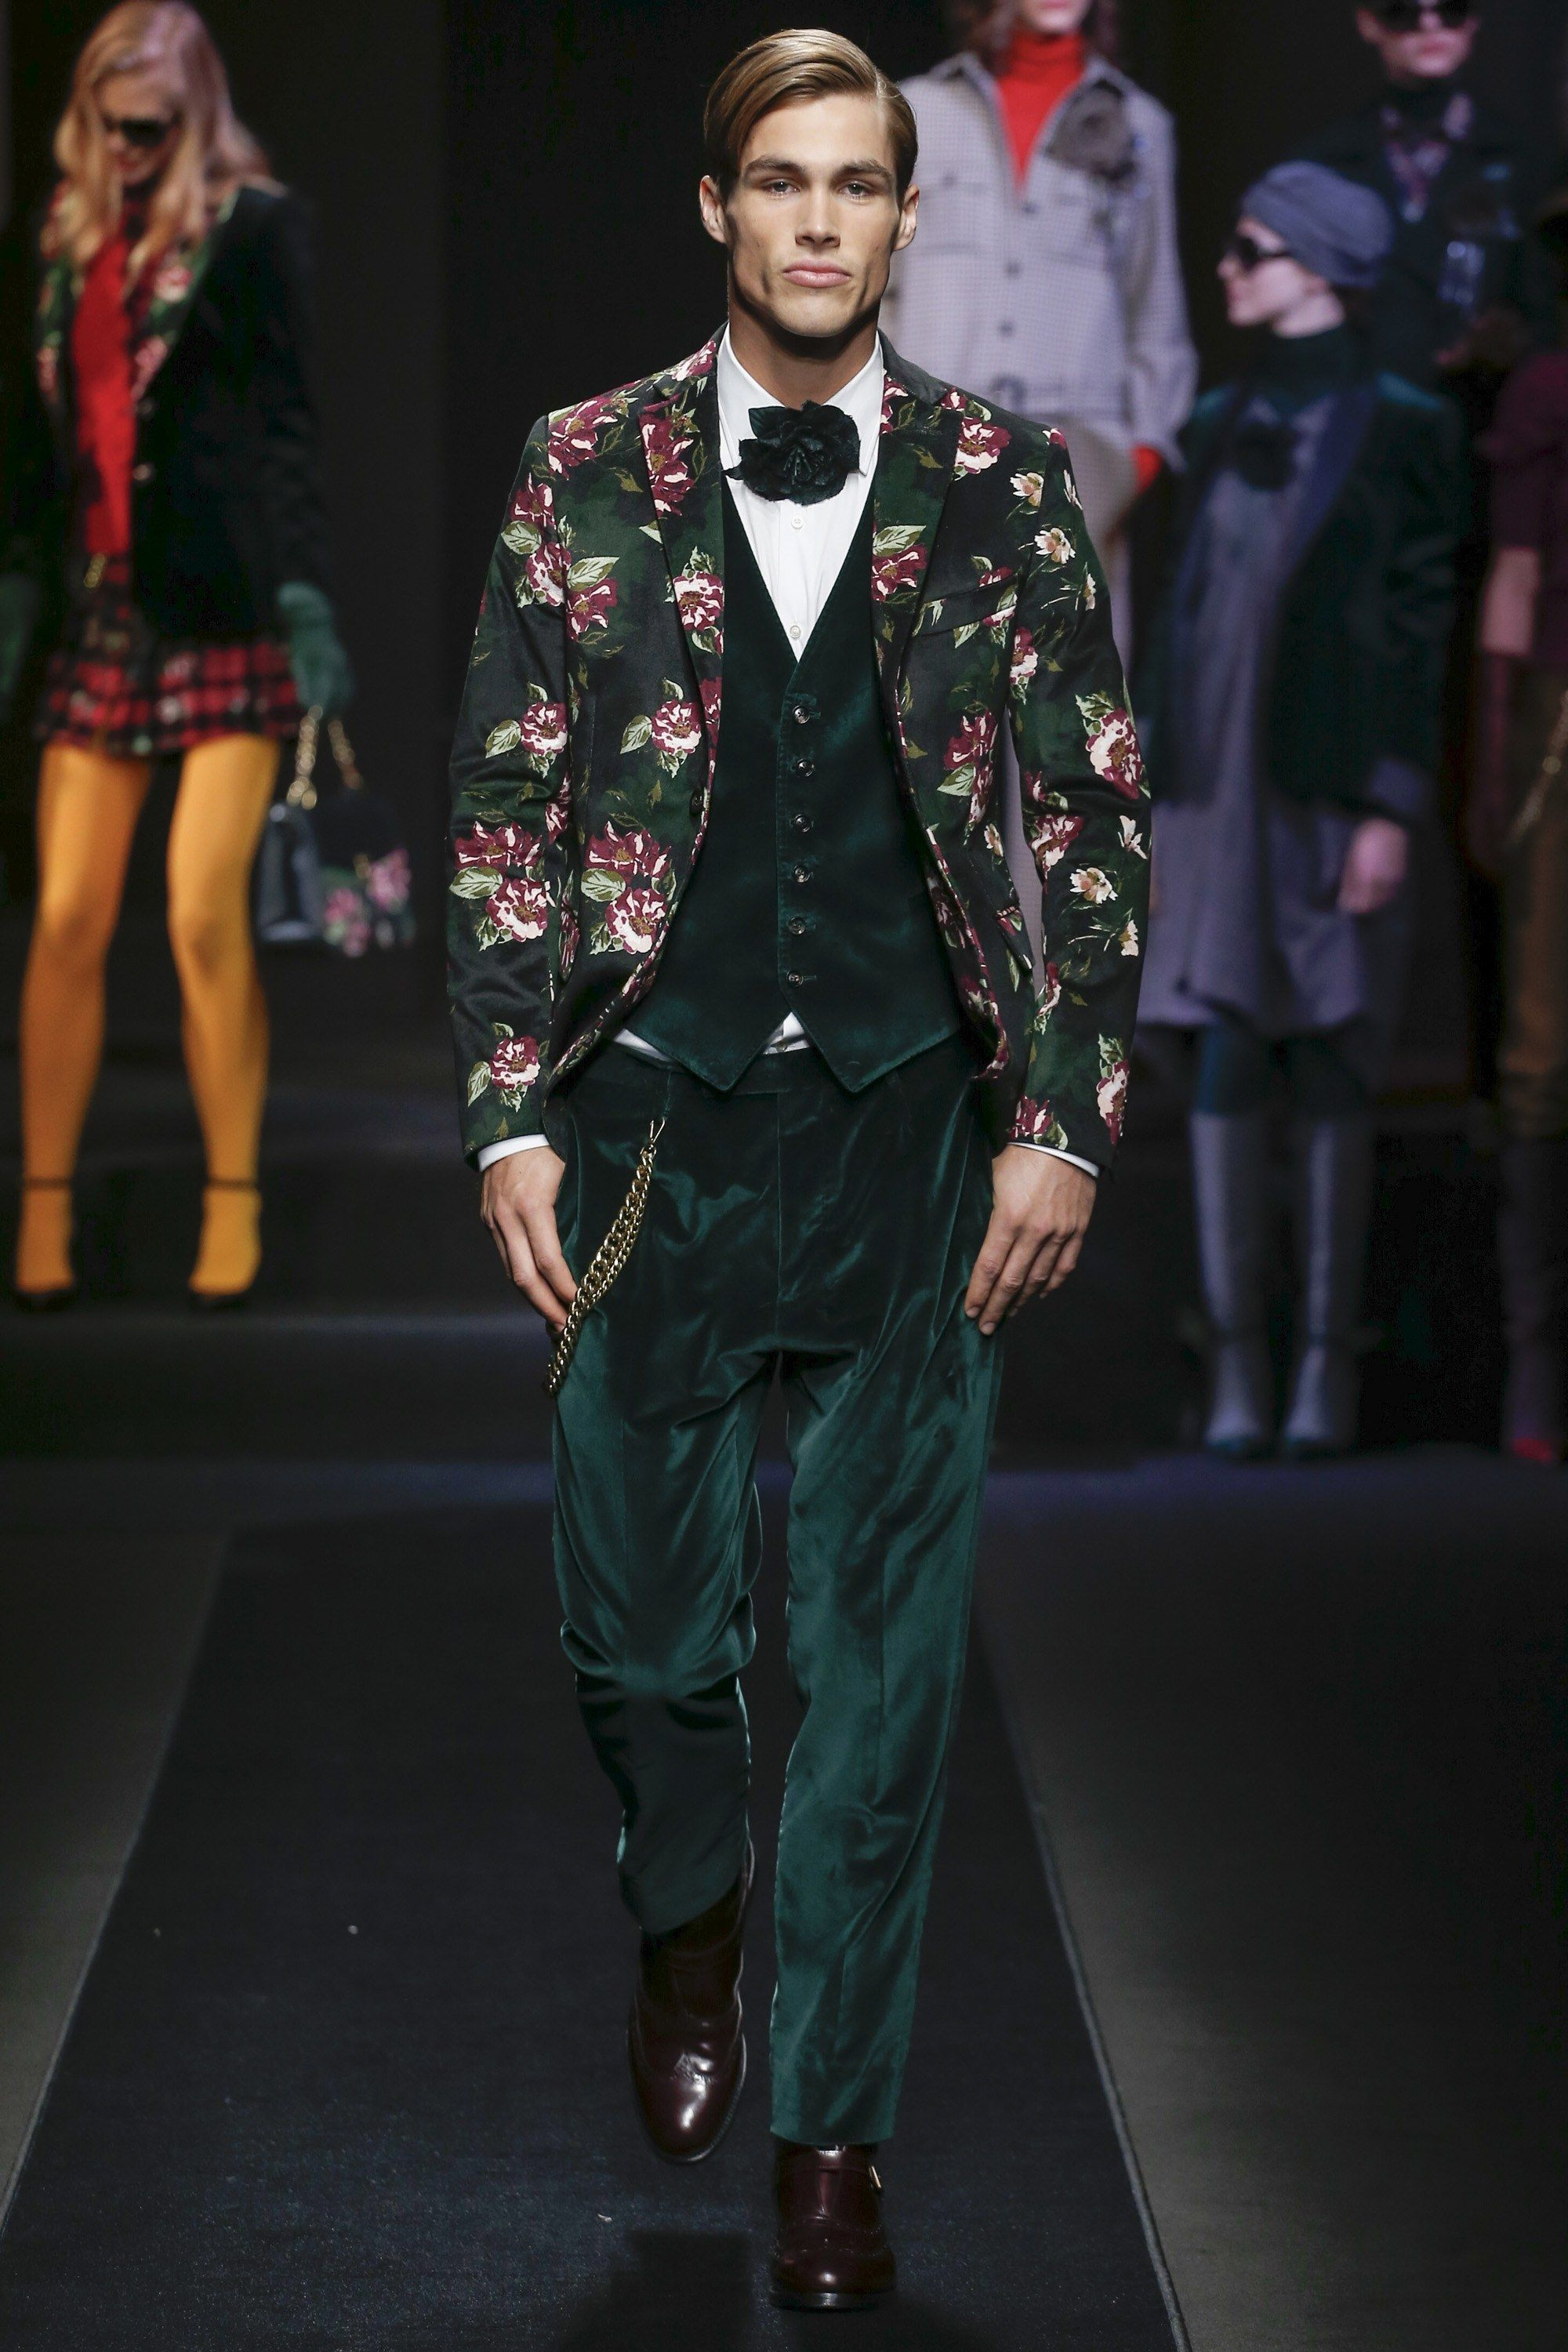 Daks Fall 2018 Menswear Fashion Show is part of Clothes Mens 2018 - The complete Daks Fall 2018 Menswear fashion show now on Vogue Runway